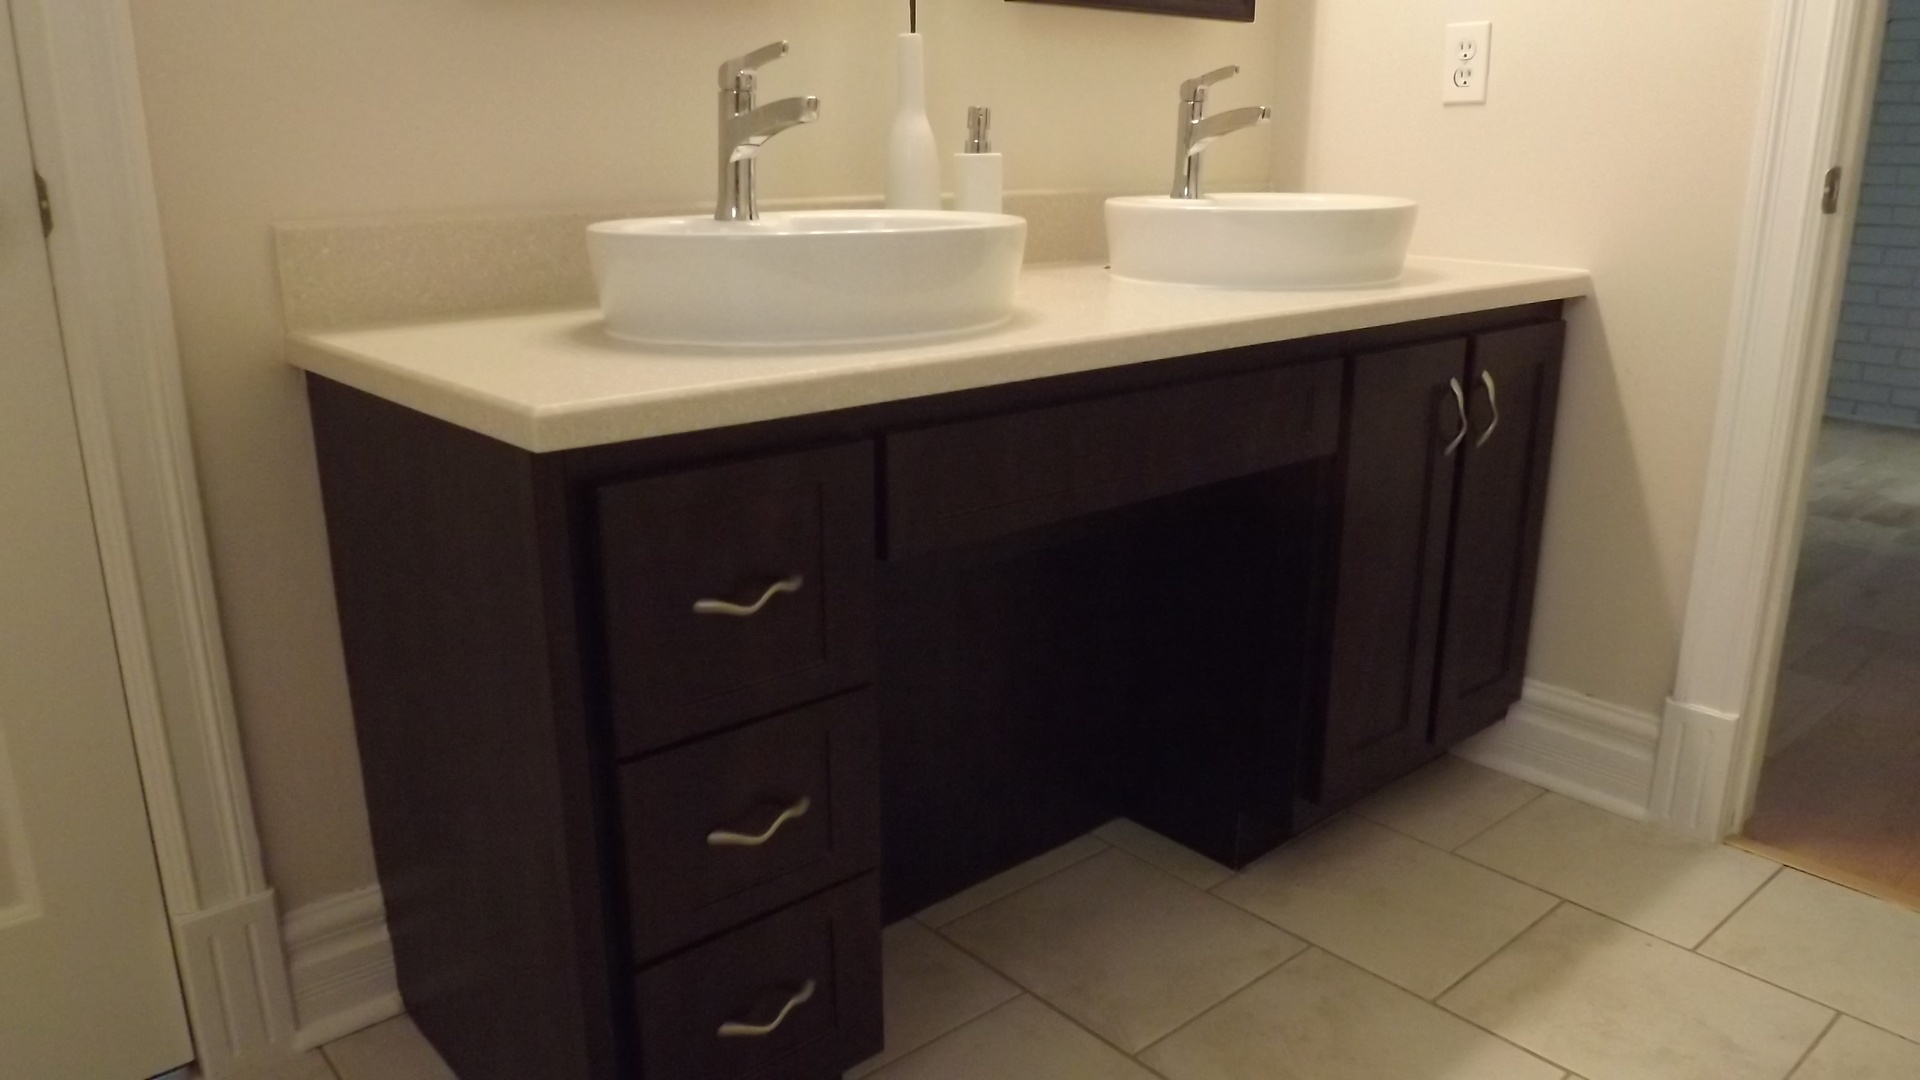 Reface Bathroom Vanity - Download